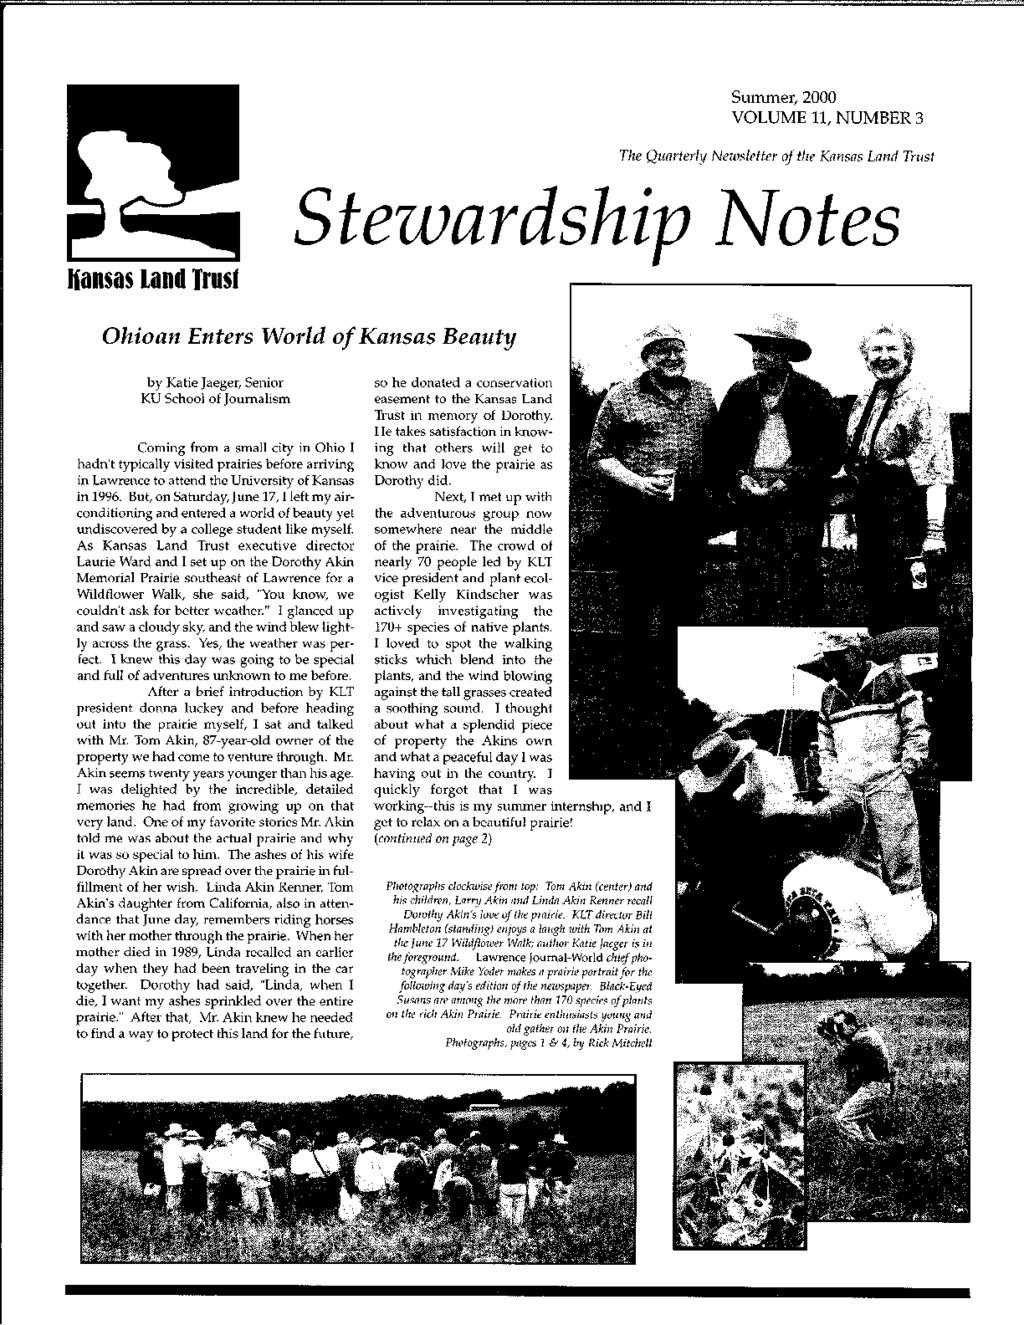 Summer, 2000 VOLUME 11, NUMBER 3 The Quarterly Newsletter of the Kansas Land Trust Hansas land Trusf tewardship ates Ohioan Enters World of Kansas Beauty by Katie Jaeger, Senior KU School of